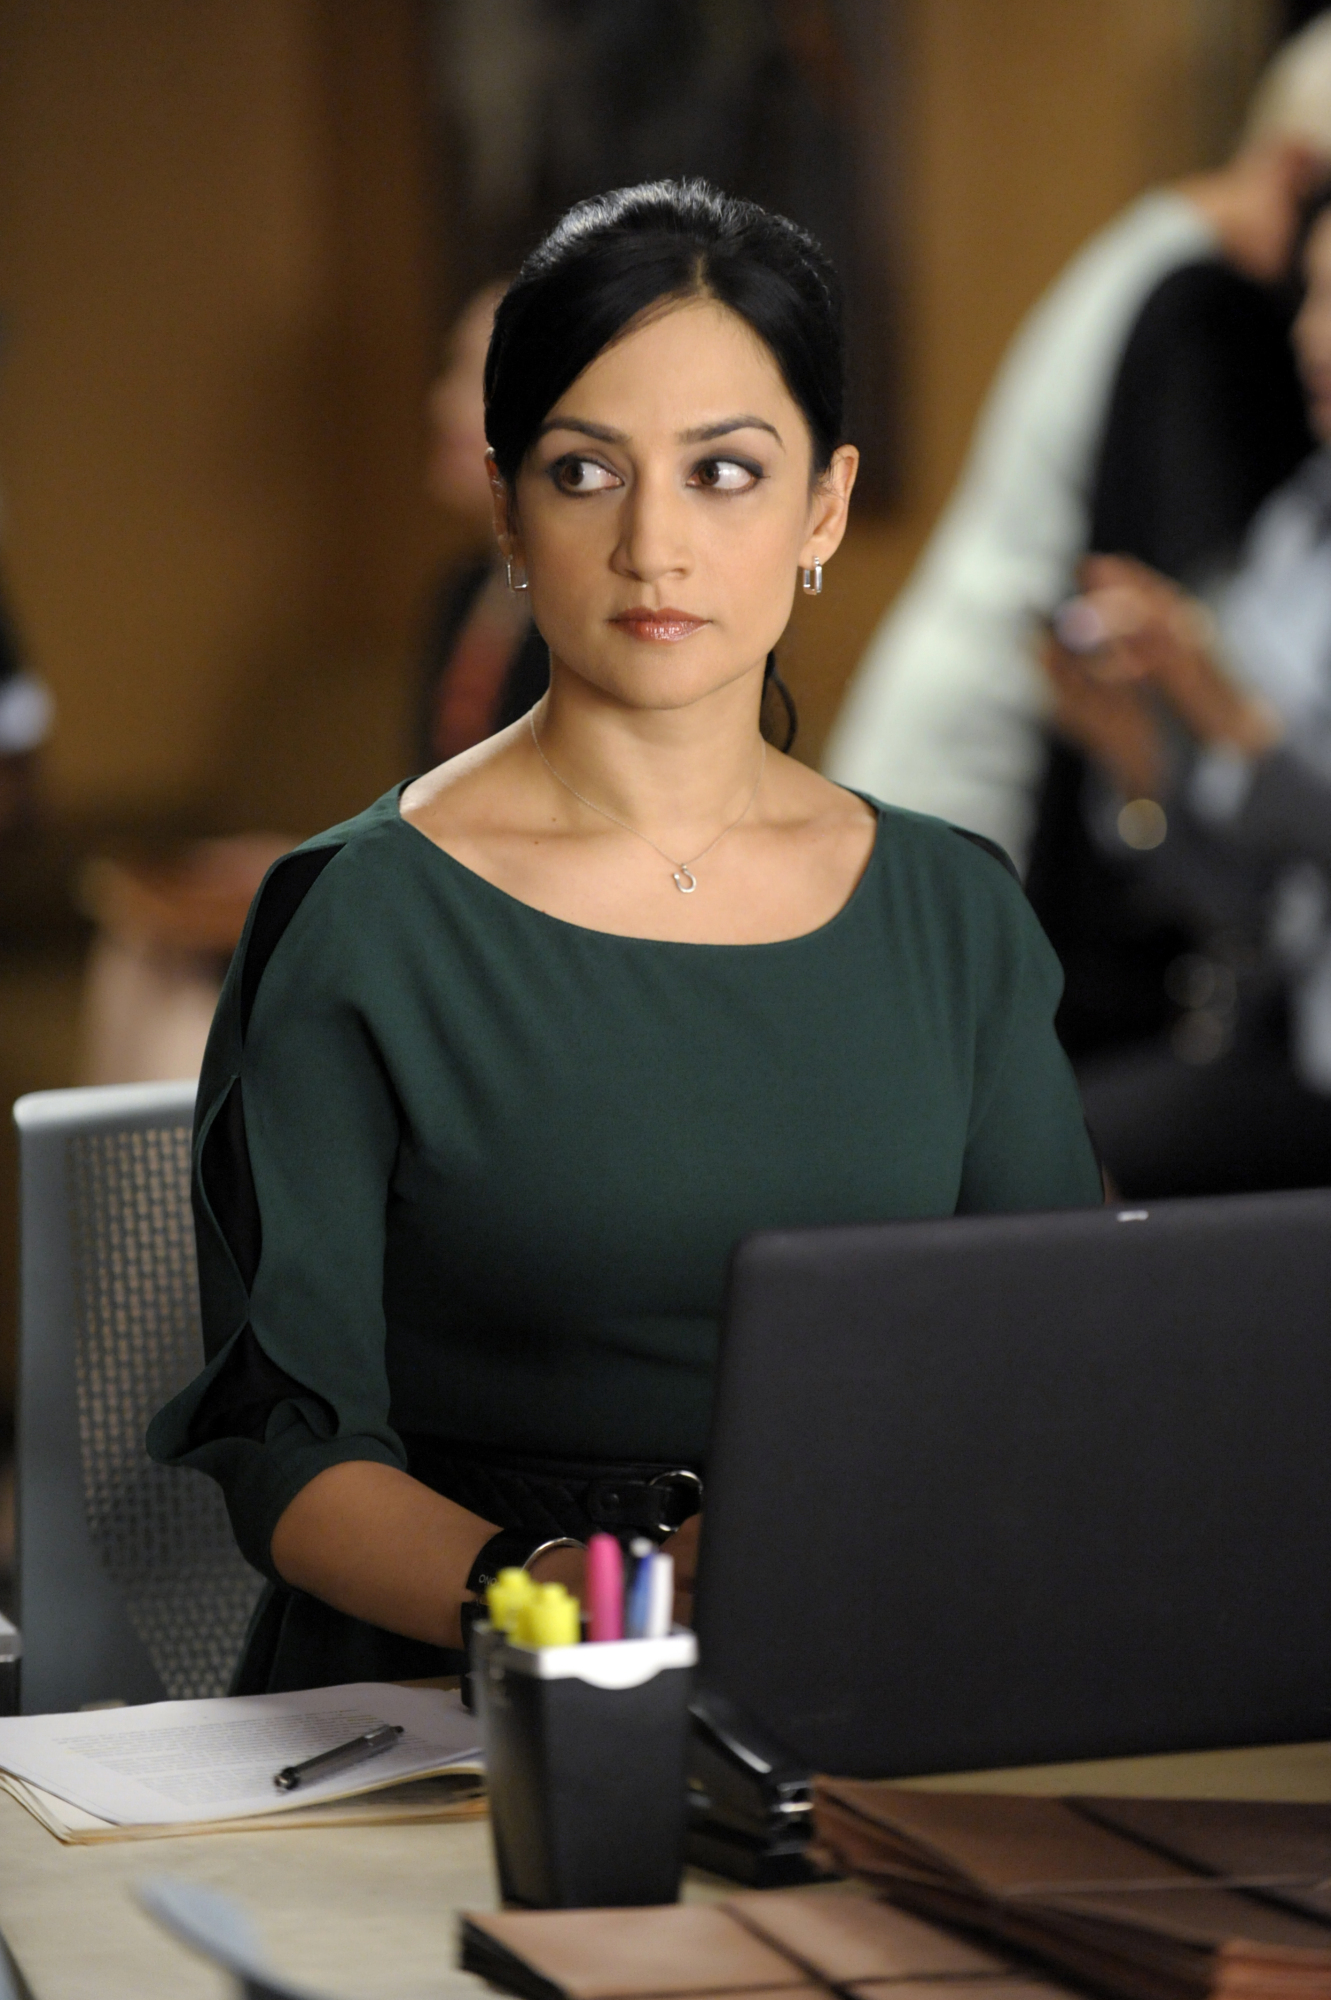 Archie Panjabi on Her Golden Globe Nod